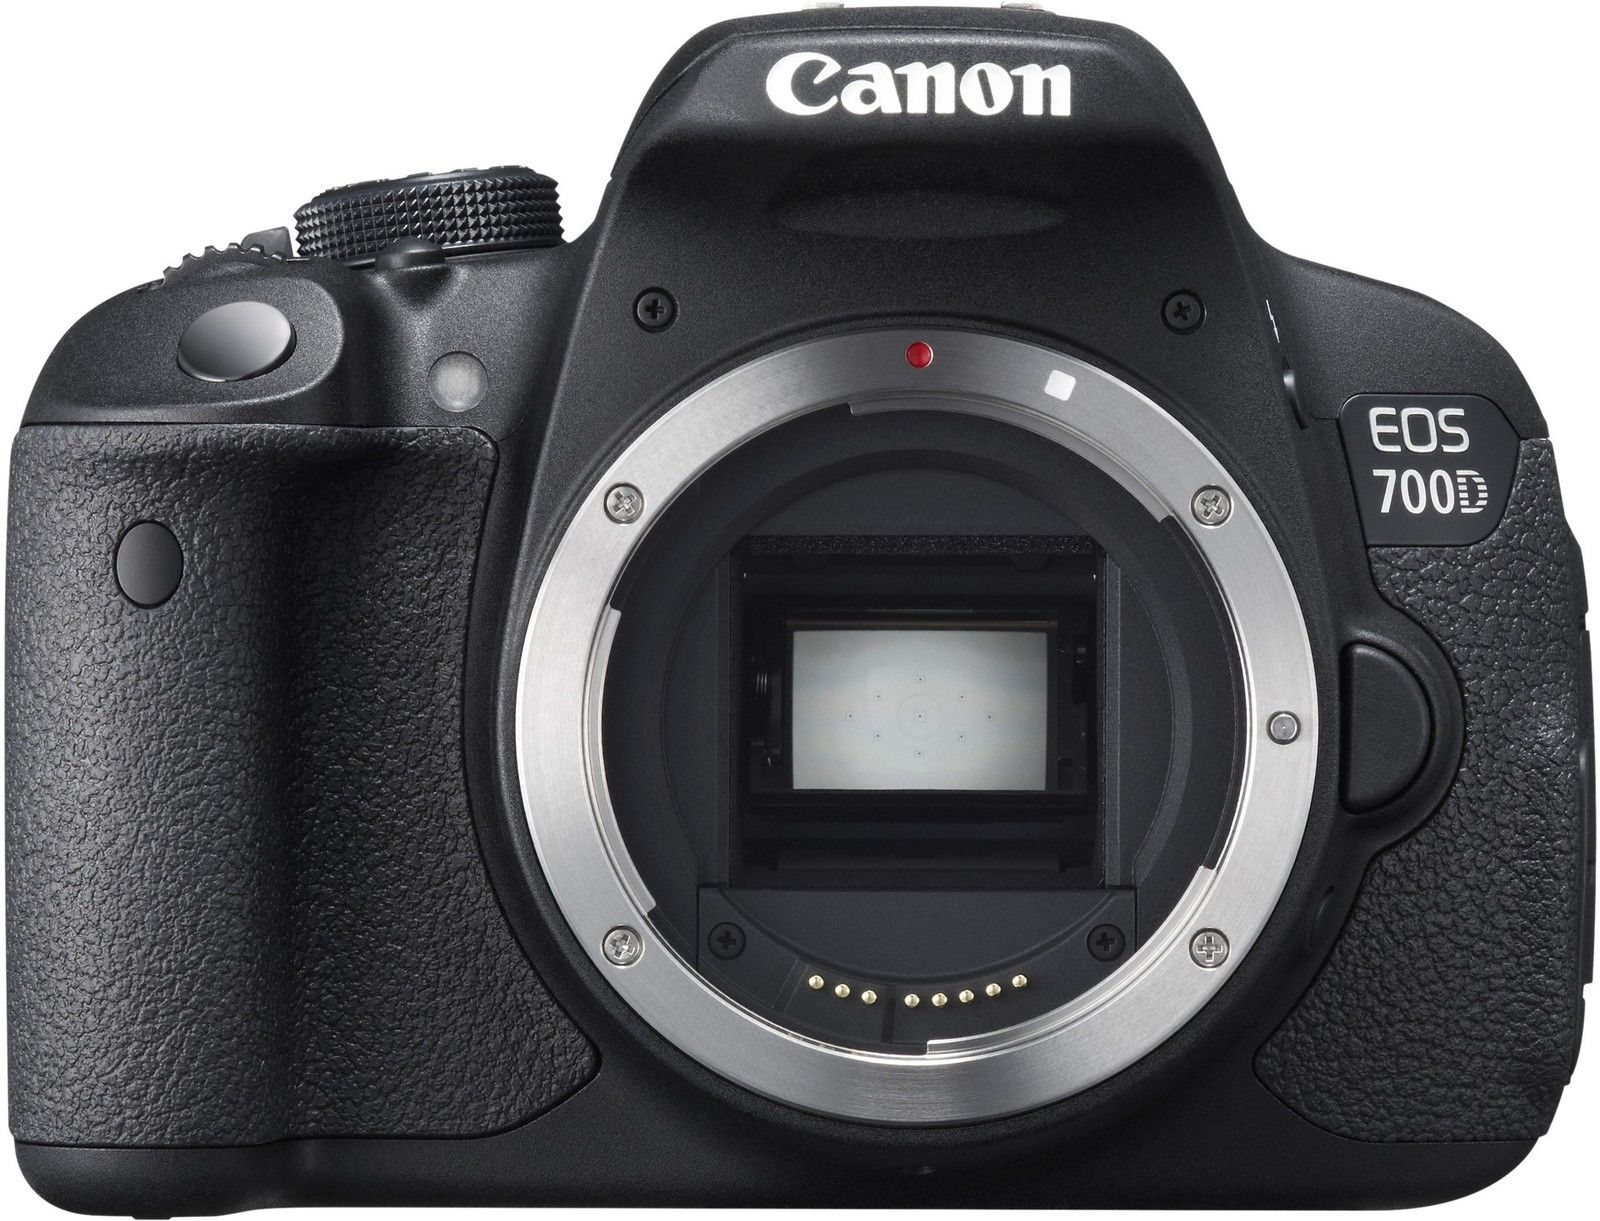 Canon EOS Rebel 700D Digital SLR Camera (Body Only)